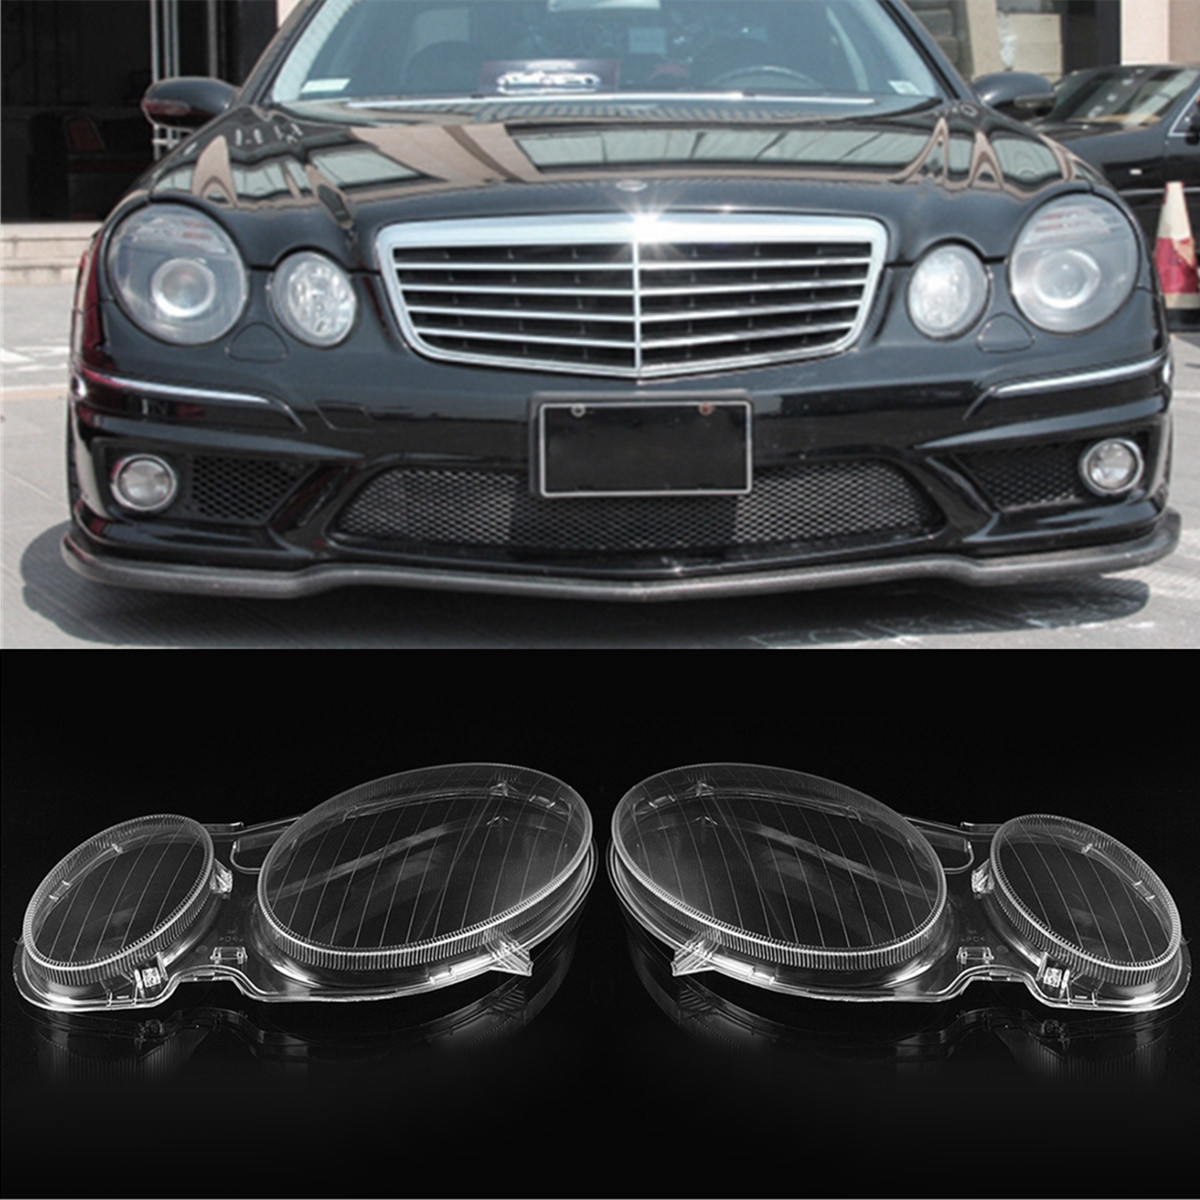 1Pair Headlight Lenses Headlamp Replacement Cover Shell Left / Right Side For MERCEDES For BENZ E CLASS W211 E320 E350 2002-08